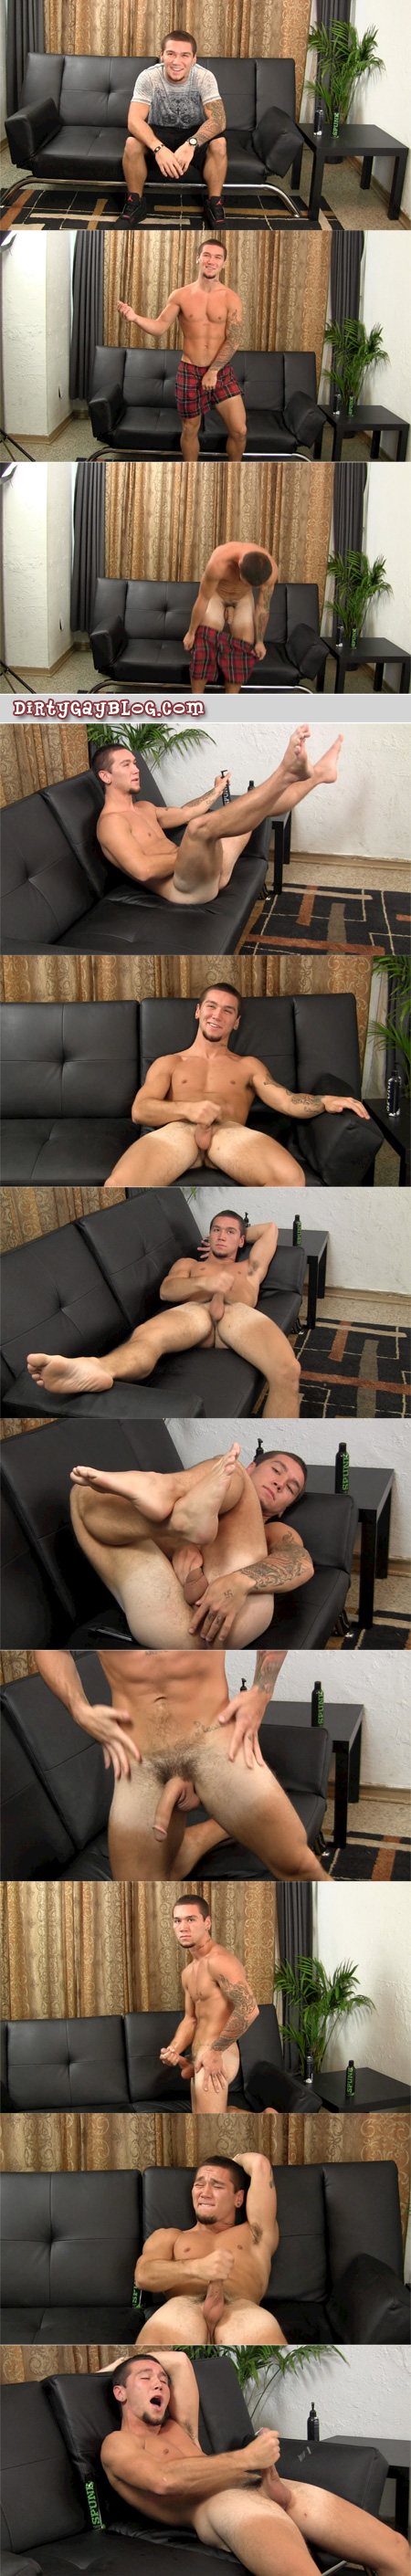 Short wrestler with tan lines cums on his thick, muscular legs.